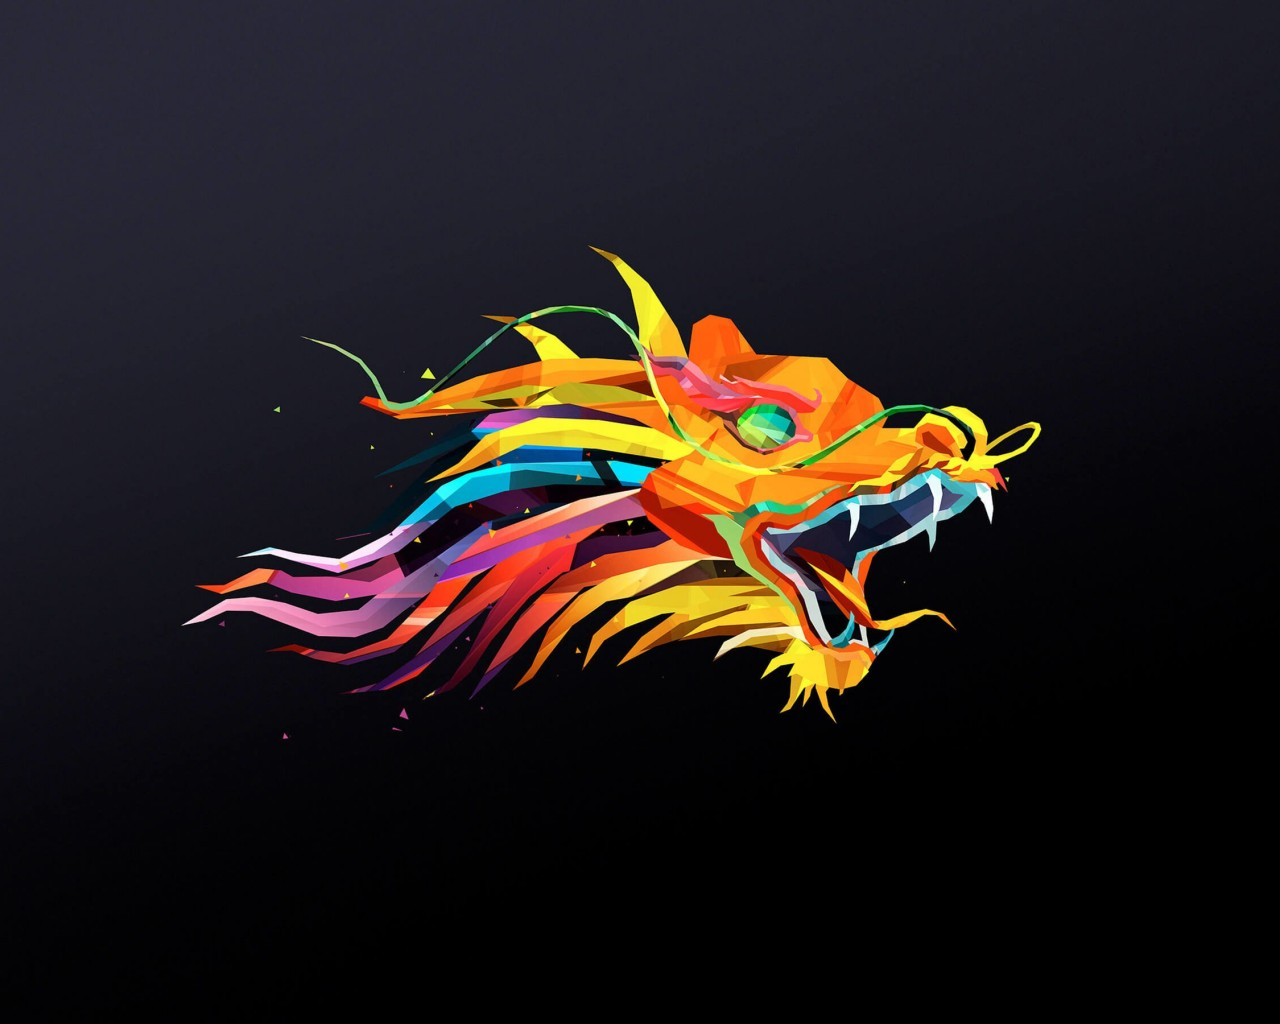 The Dragon Wallpaper for Desktop 1280x1024